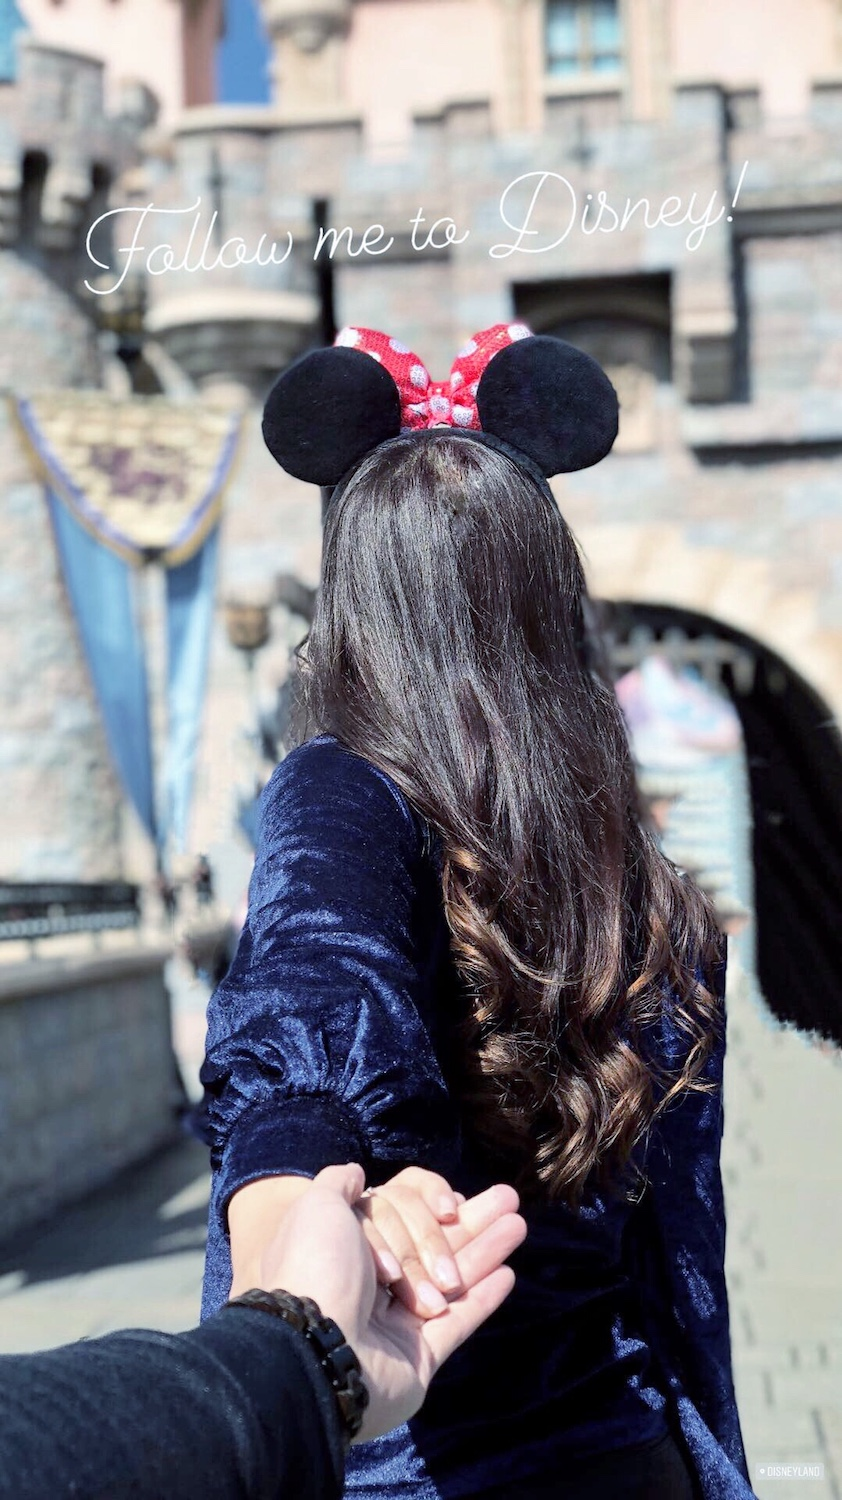 follow me to disneyland